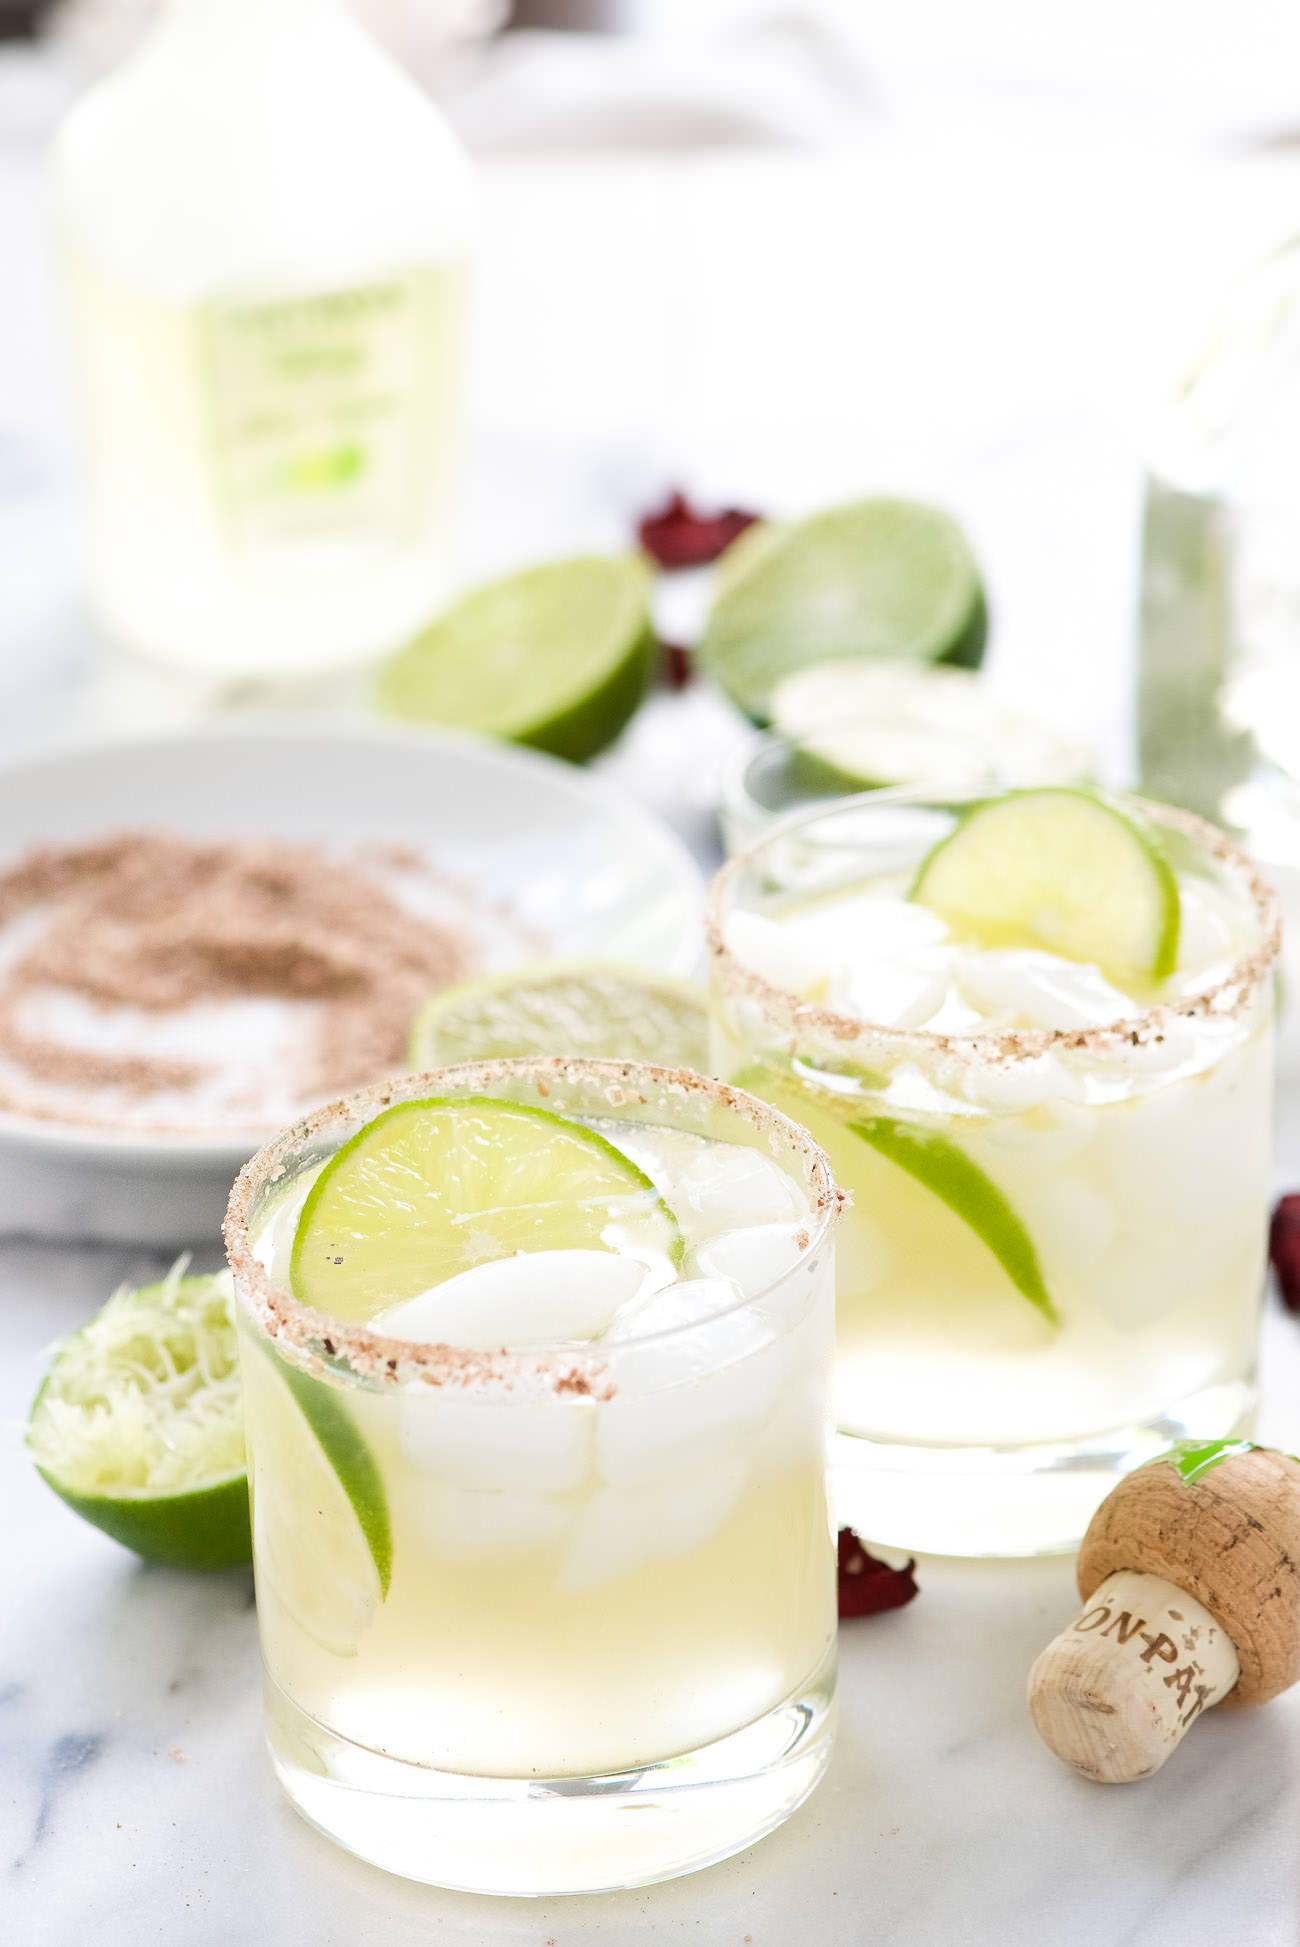 Spice your margarita with this Spicy Rosa Picante Margarita for Patron Margarita of the Year! Fresh lime juice, ginger, a bit of jalapeno and rose water make this one top shelf margarita!